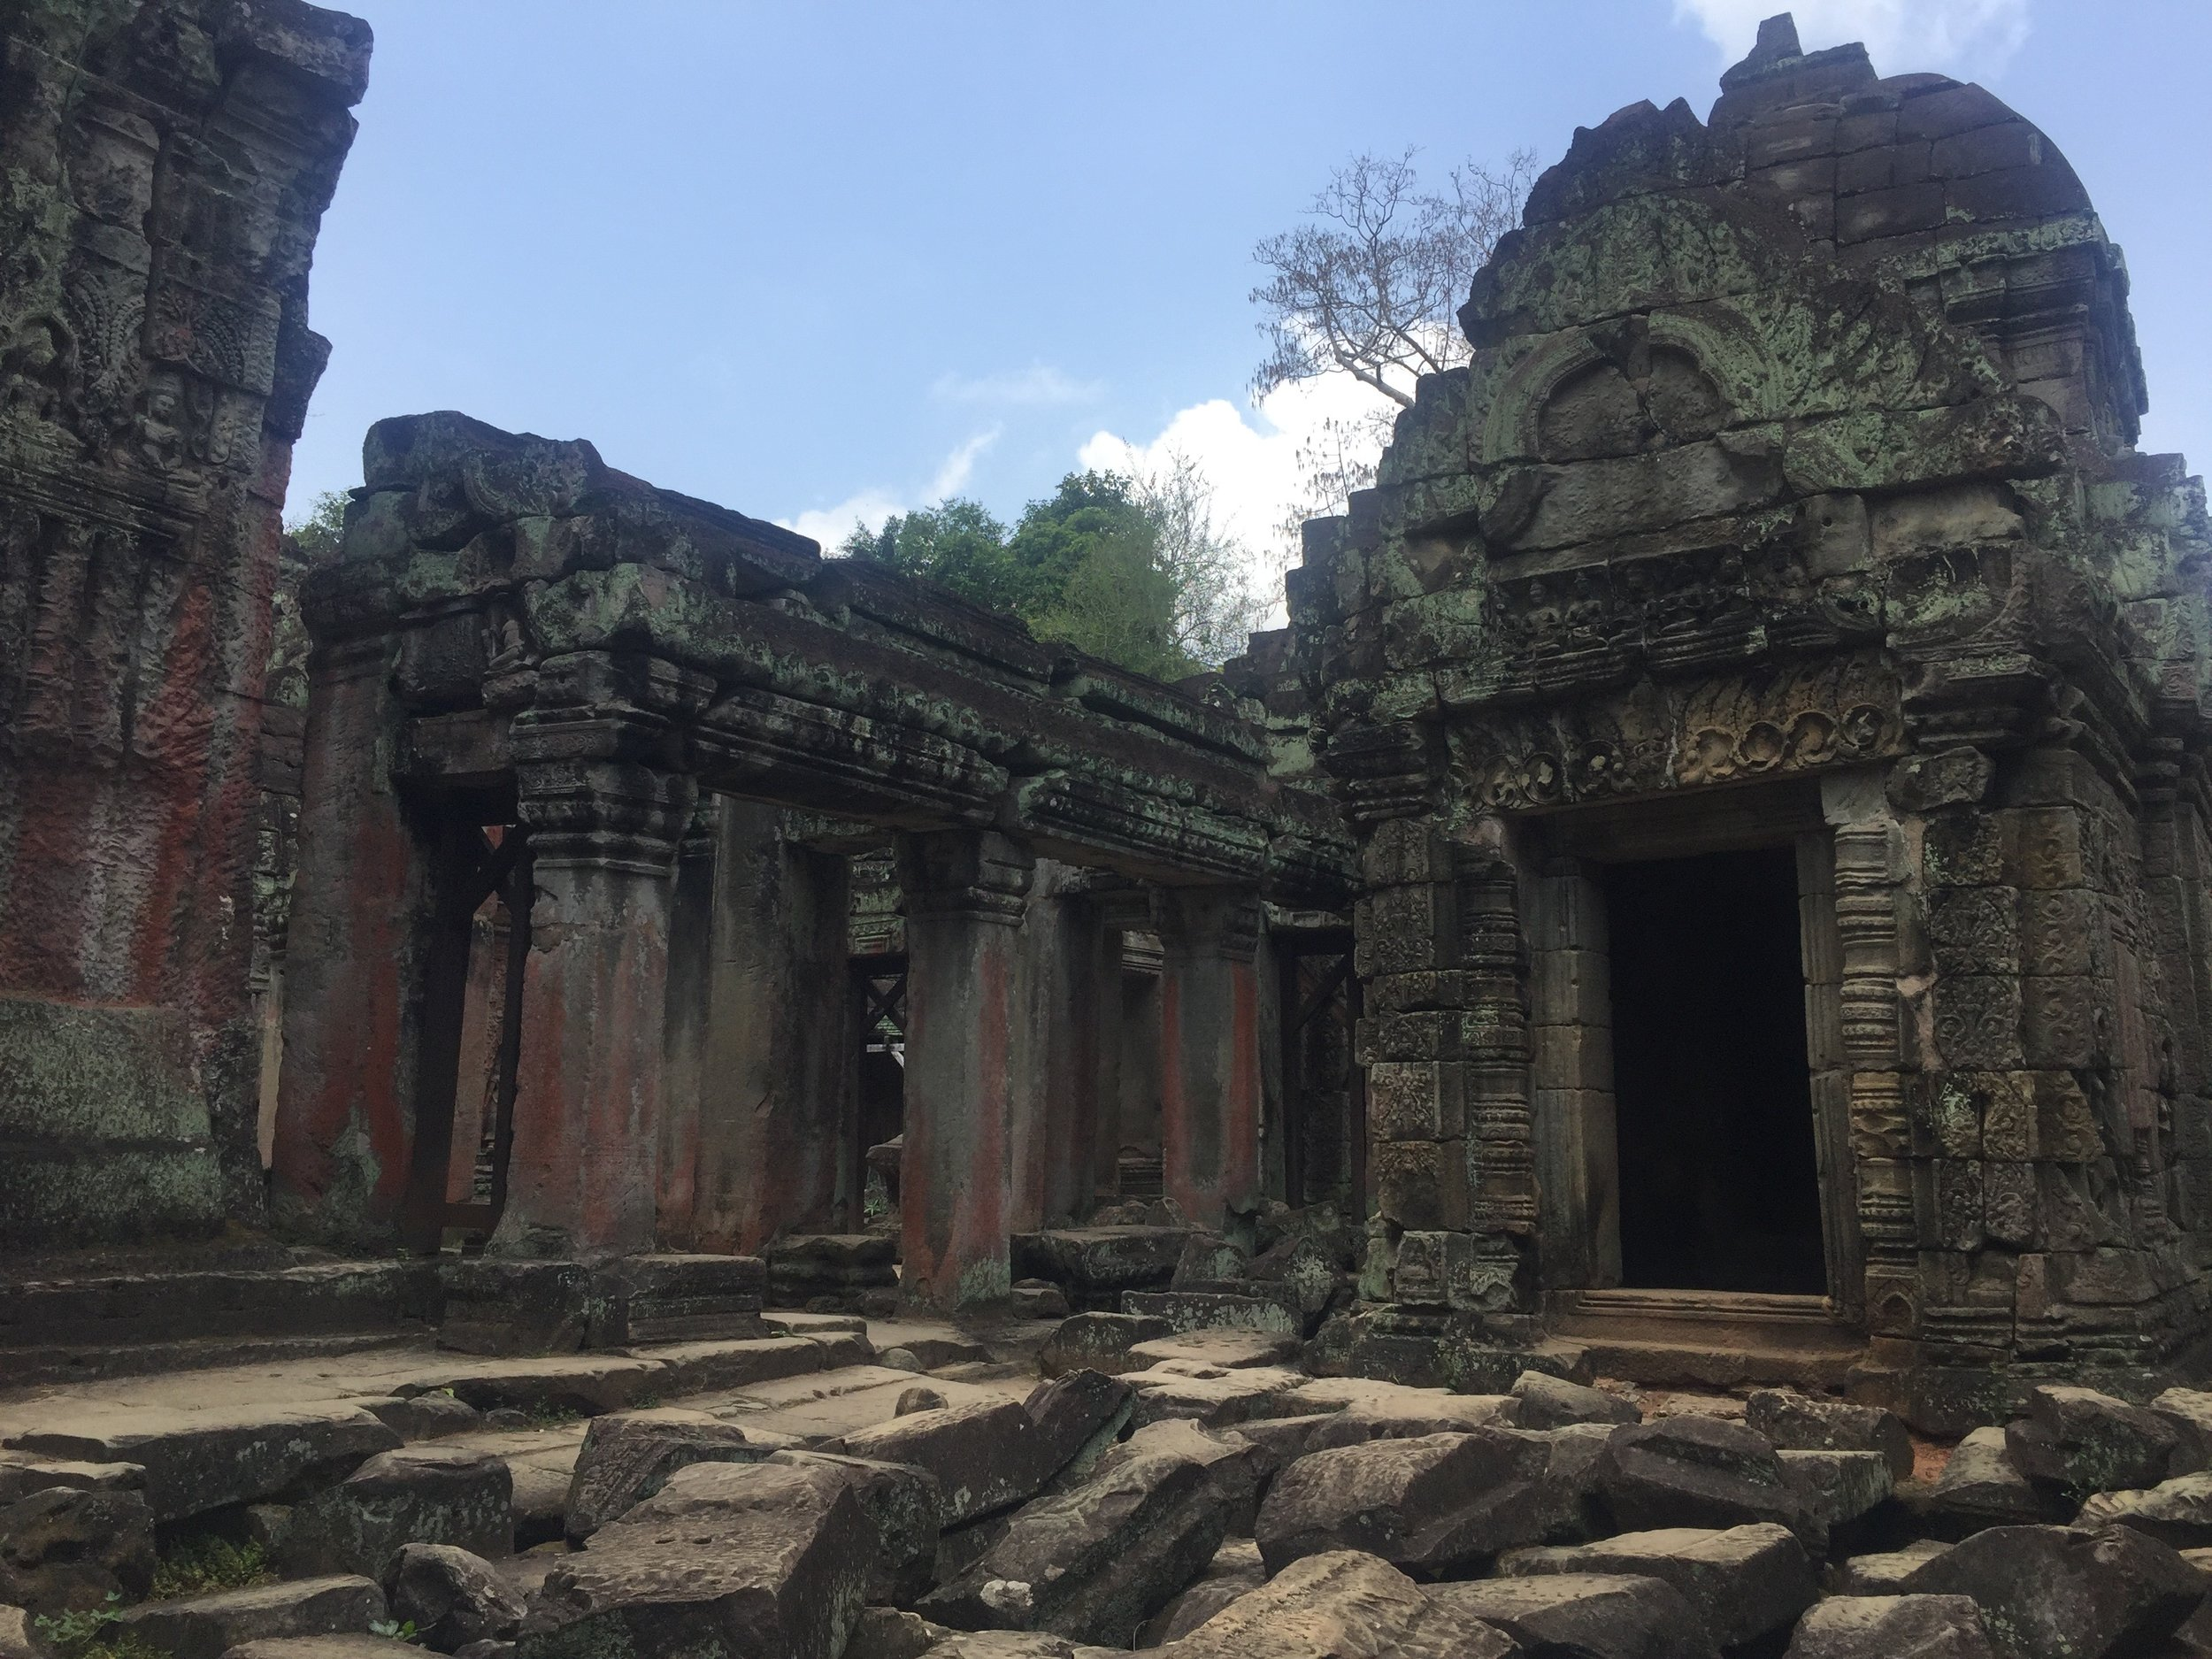 Preah Khan - 12th Century AD is a fusion temple of Buddhism and Hinduism built by King Jayavarman VII.